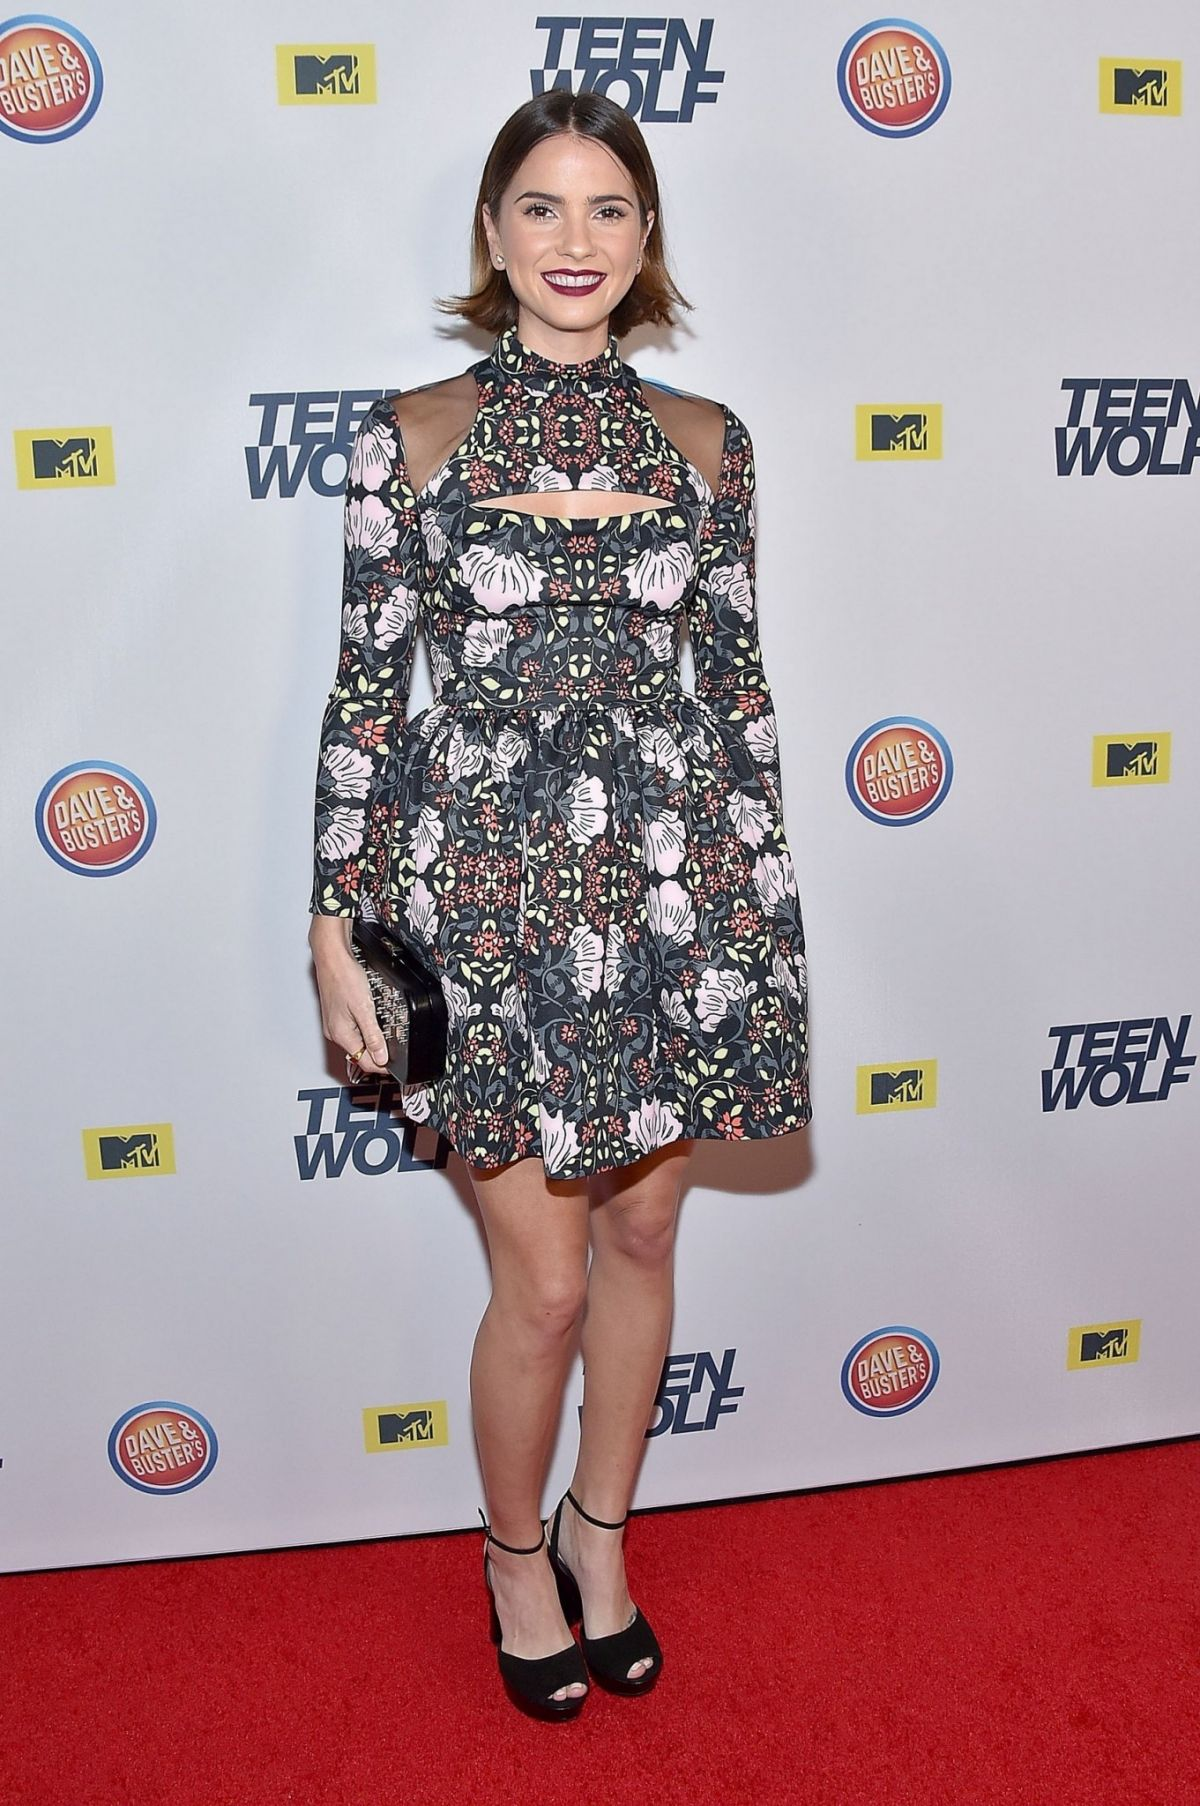 SHELLEY HENNIG at MTV Teen Wolf Premiere Party in Hollywood 12/20/2015